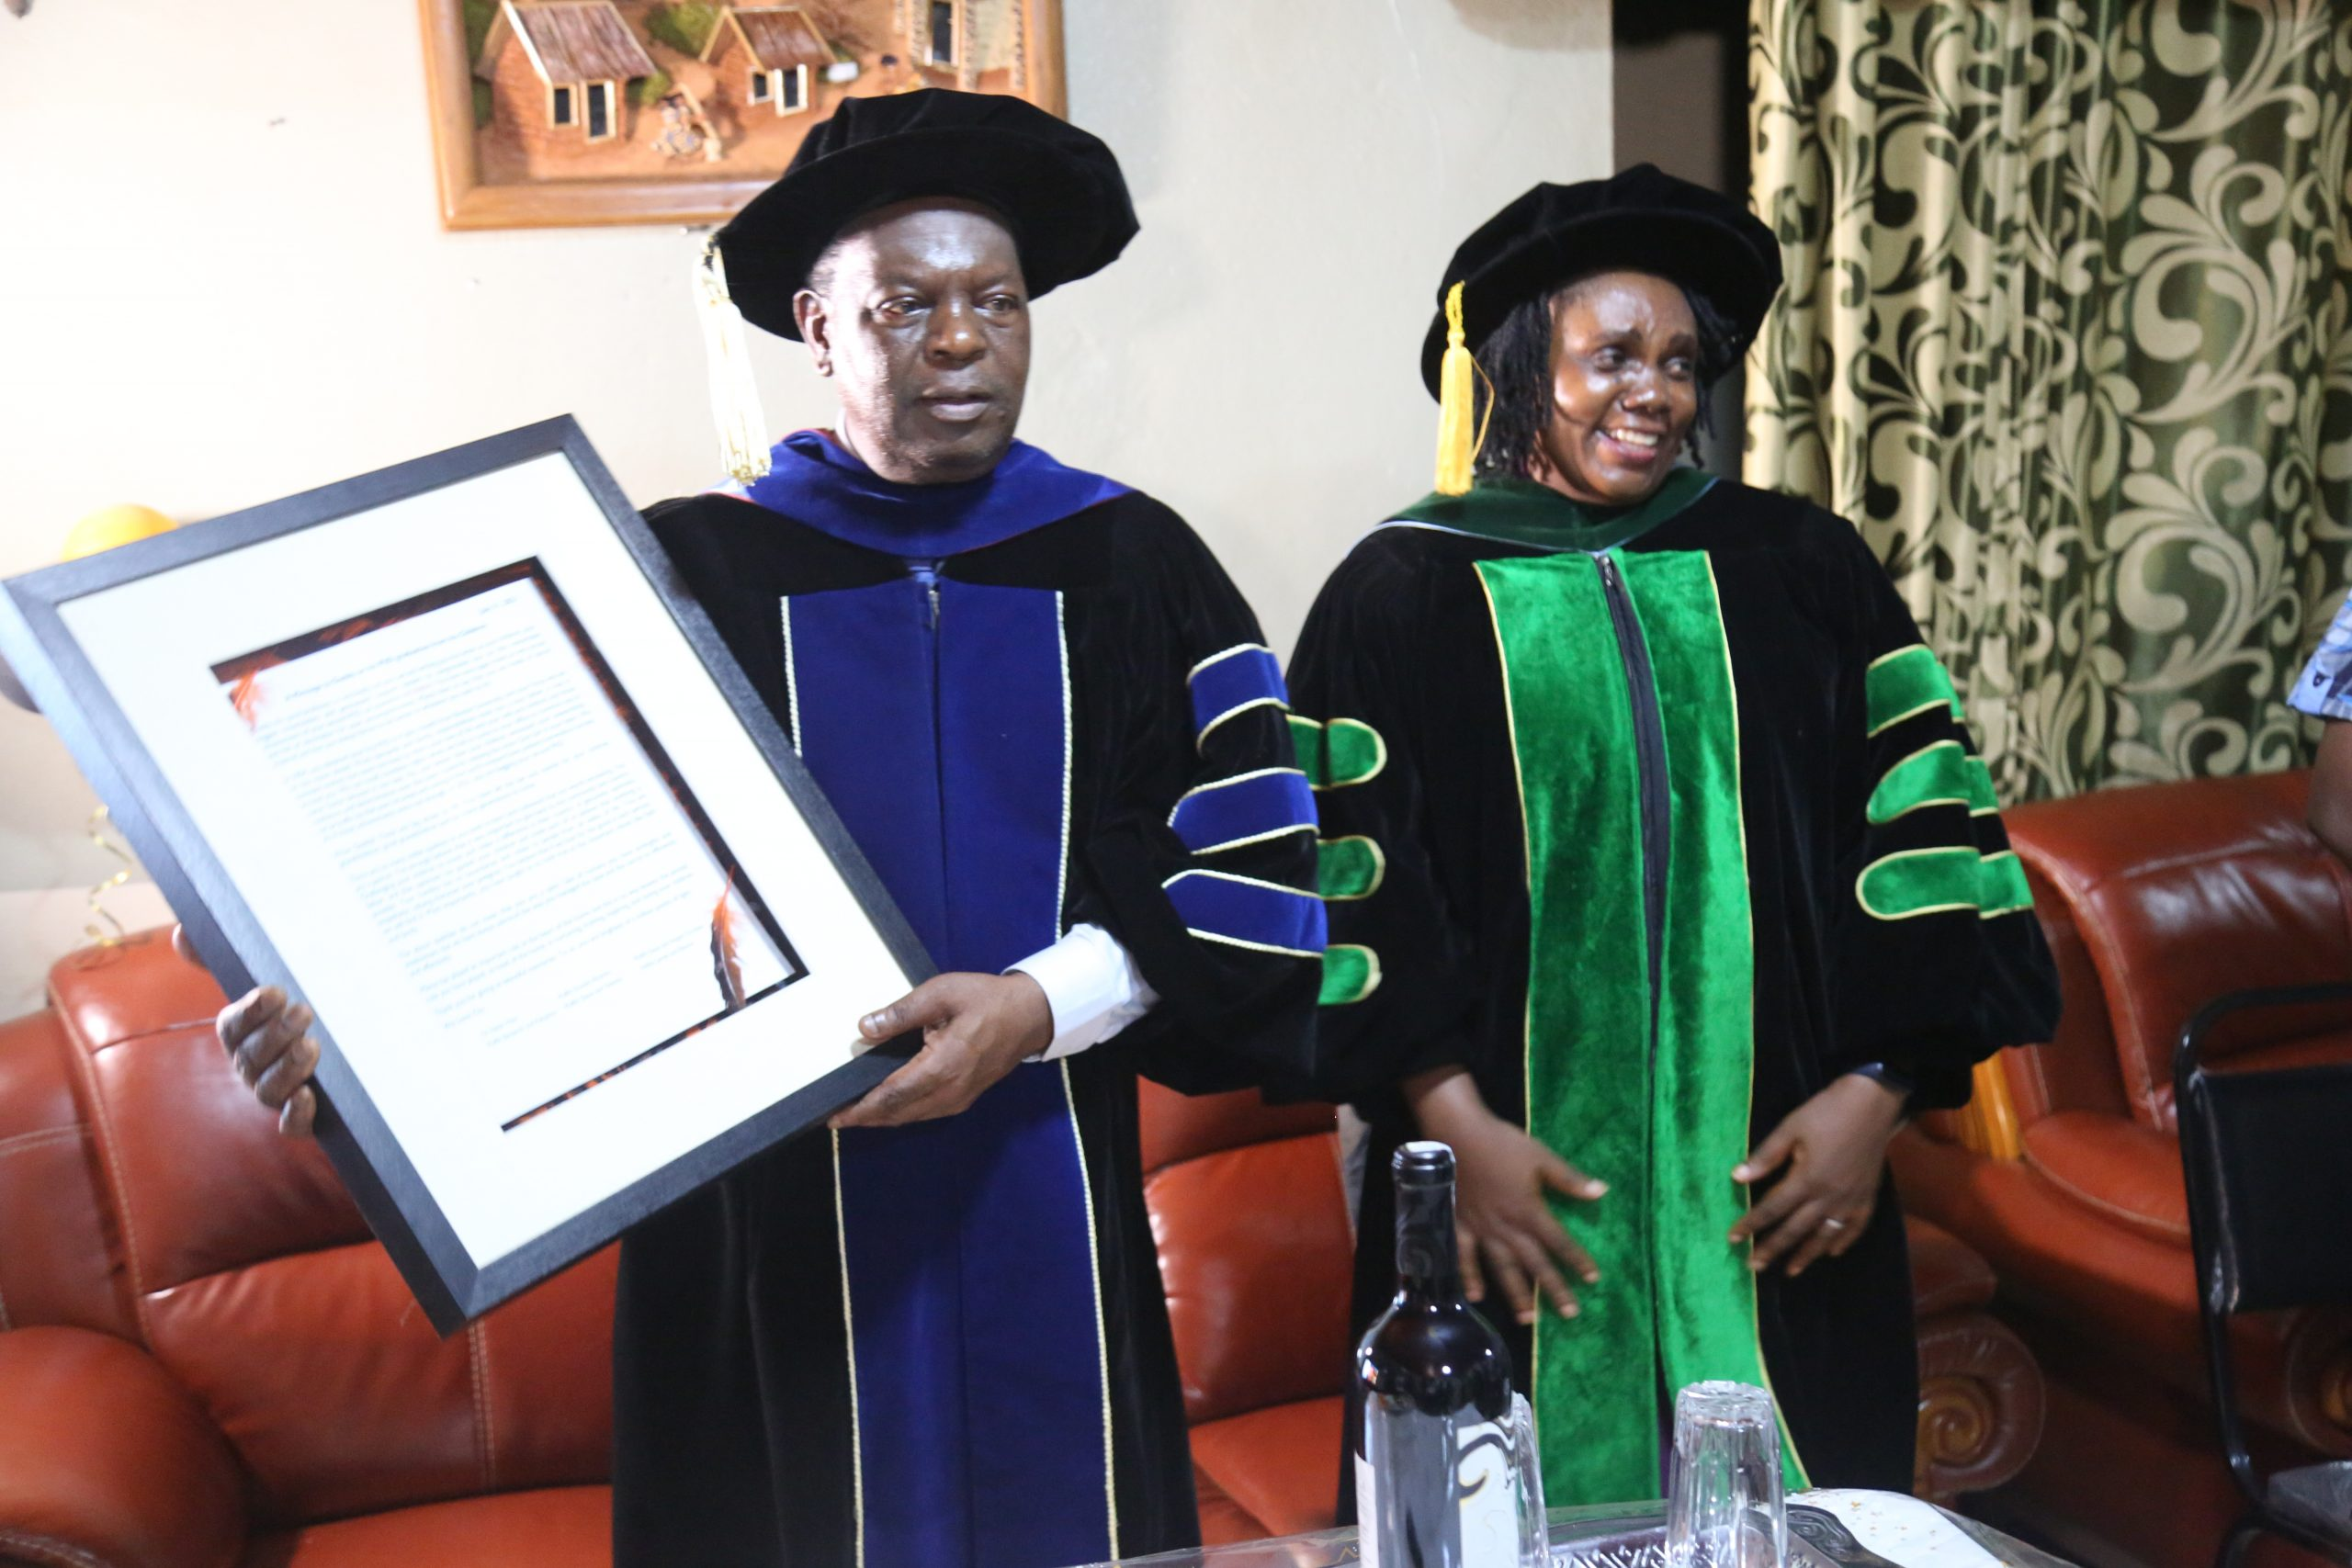 Prof Tih obtains a second Ph.D., with Dr. Mboh joining this rank in Public Health